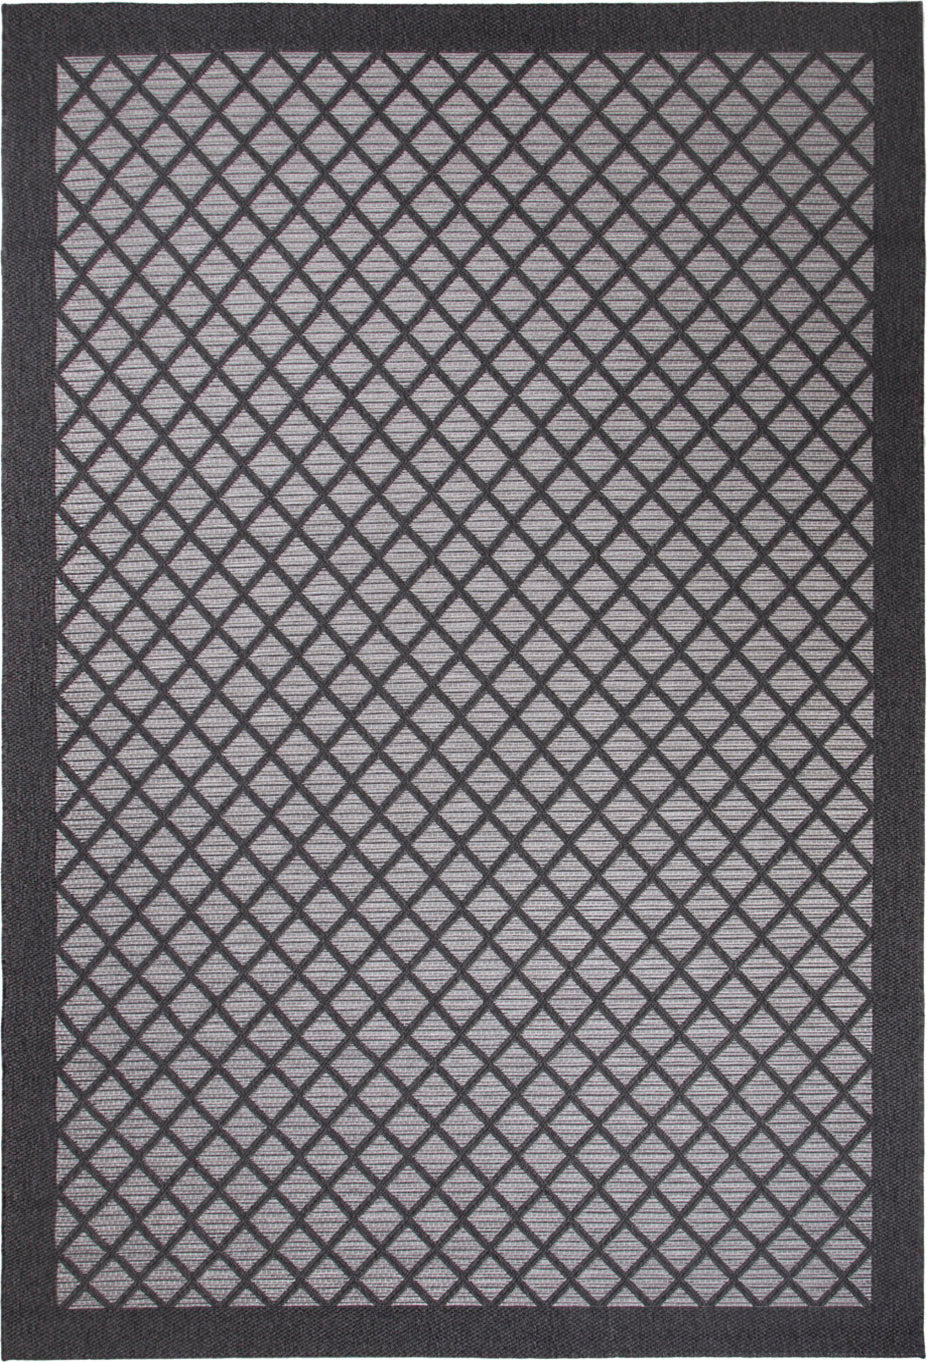 Tapete Breeze Anthracite Grey 6990/E644